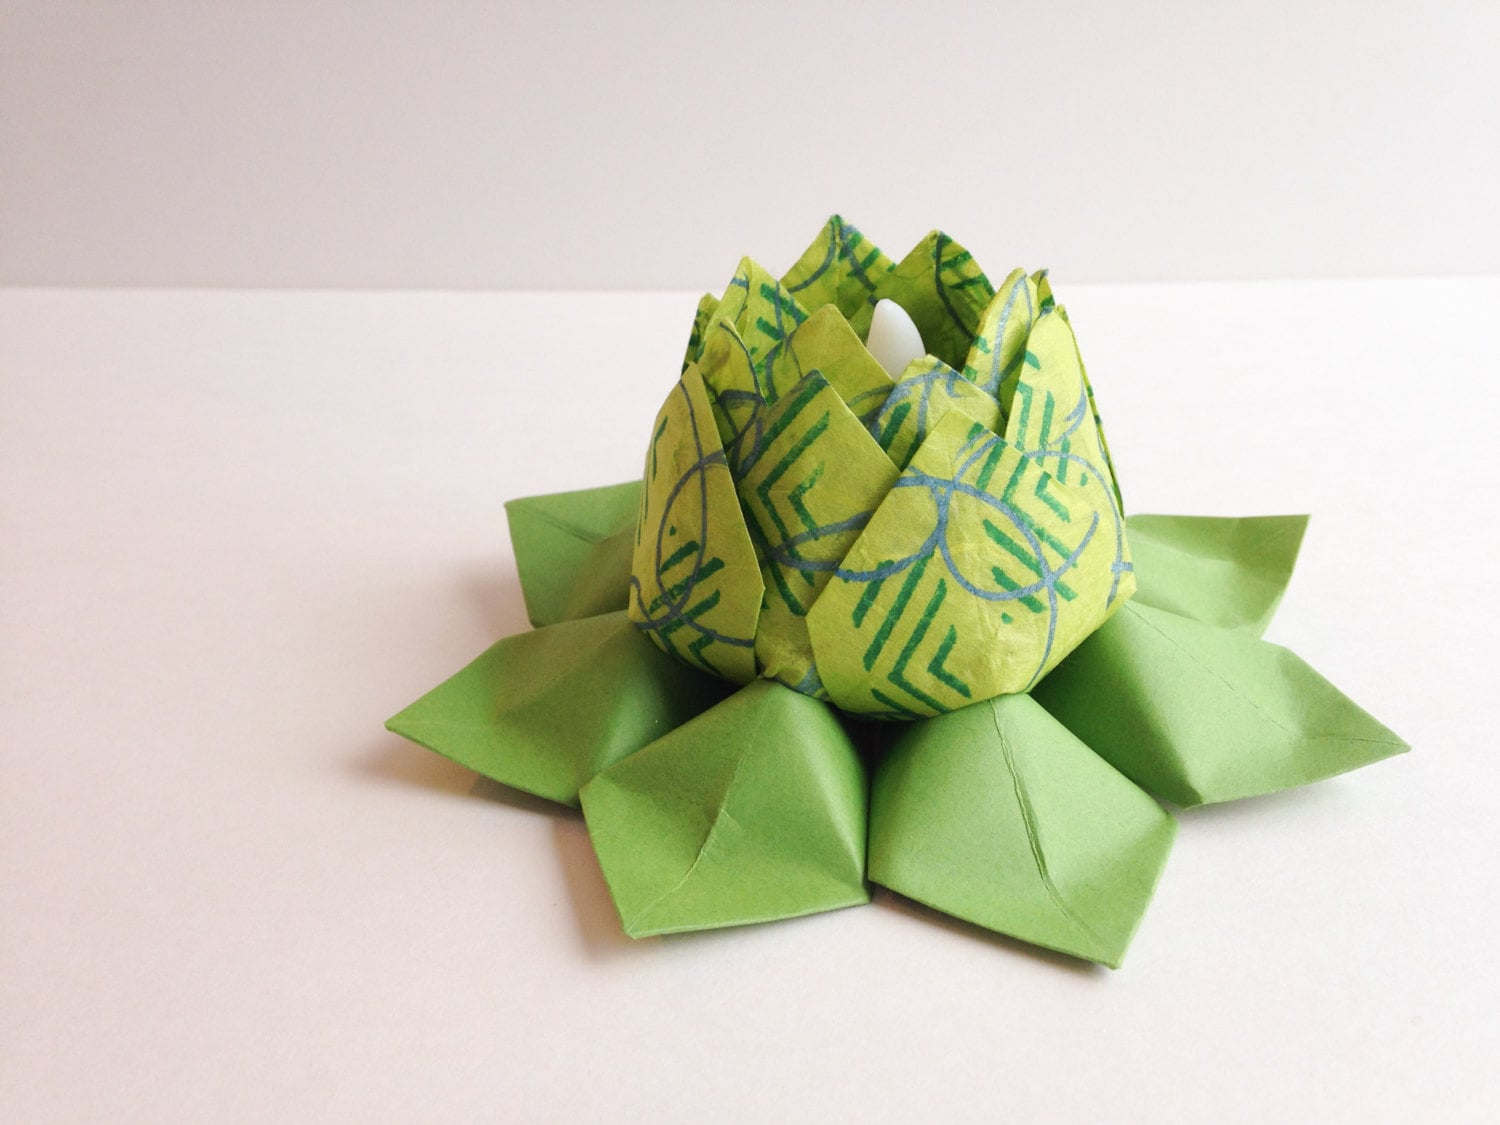 Origami Tea Light Paper Flower battery LED candle holiday - photo#39